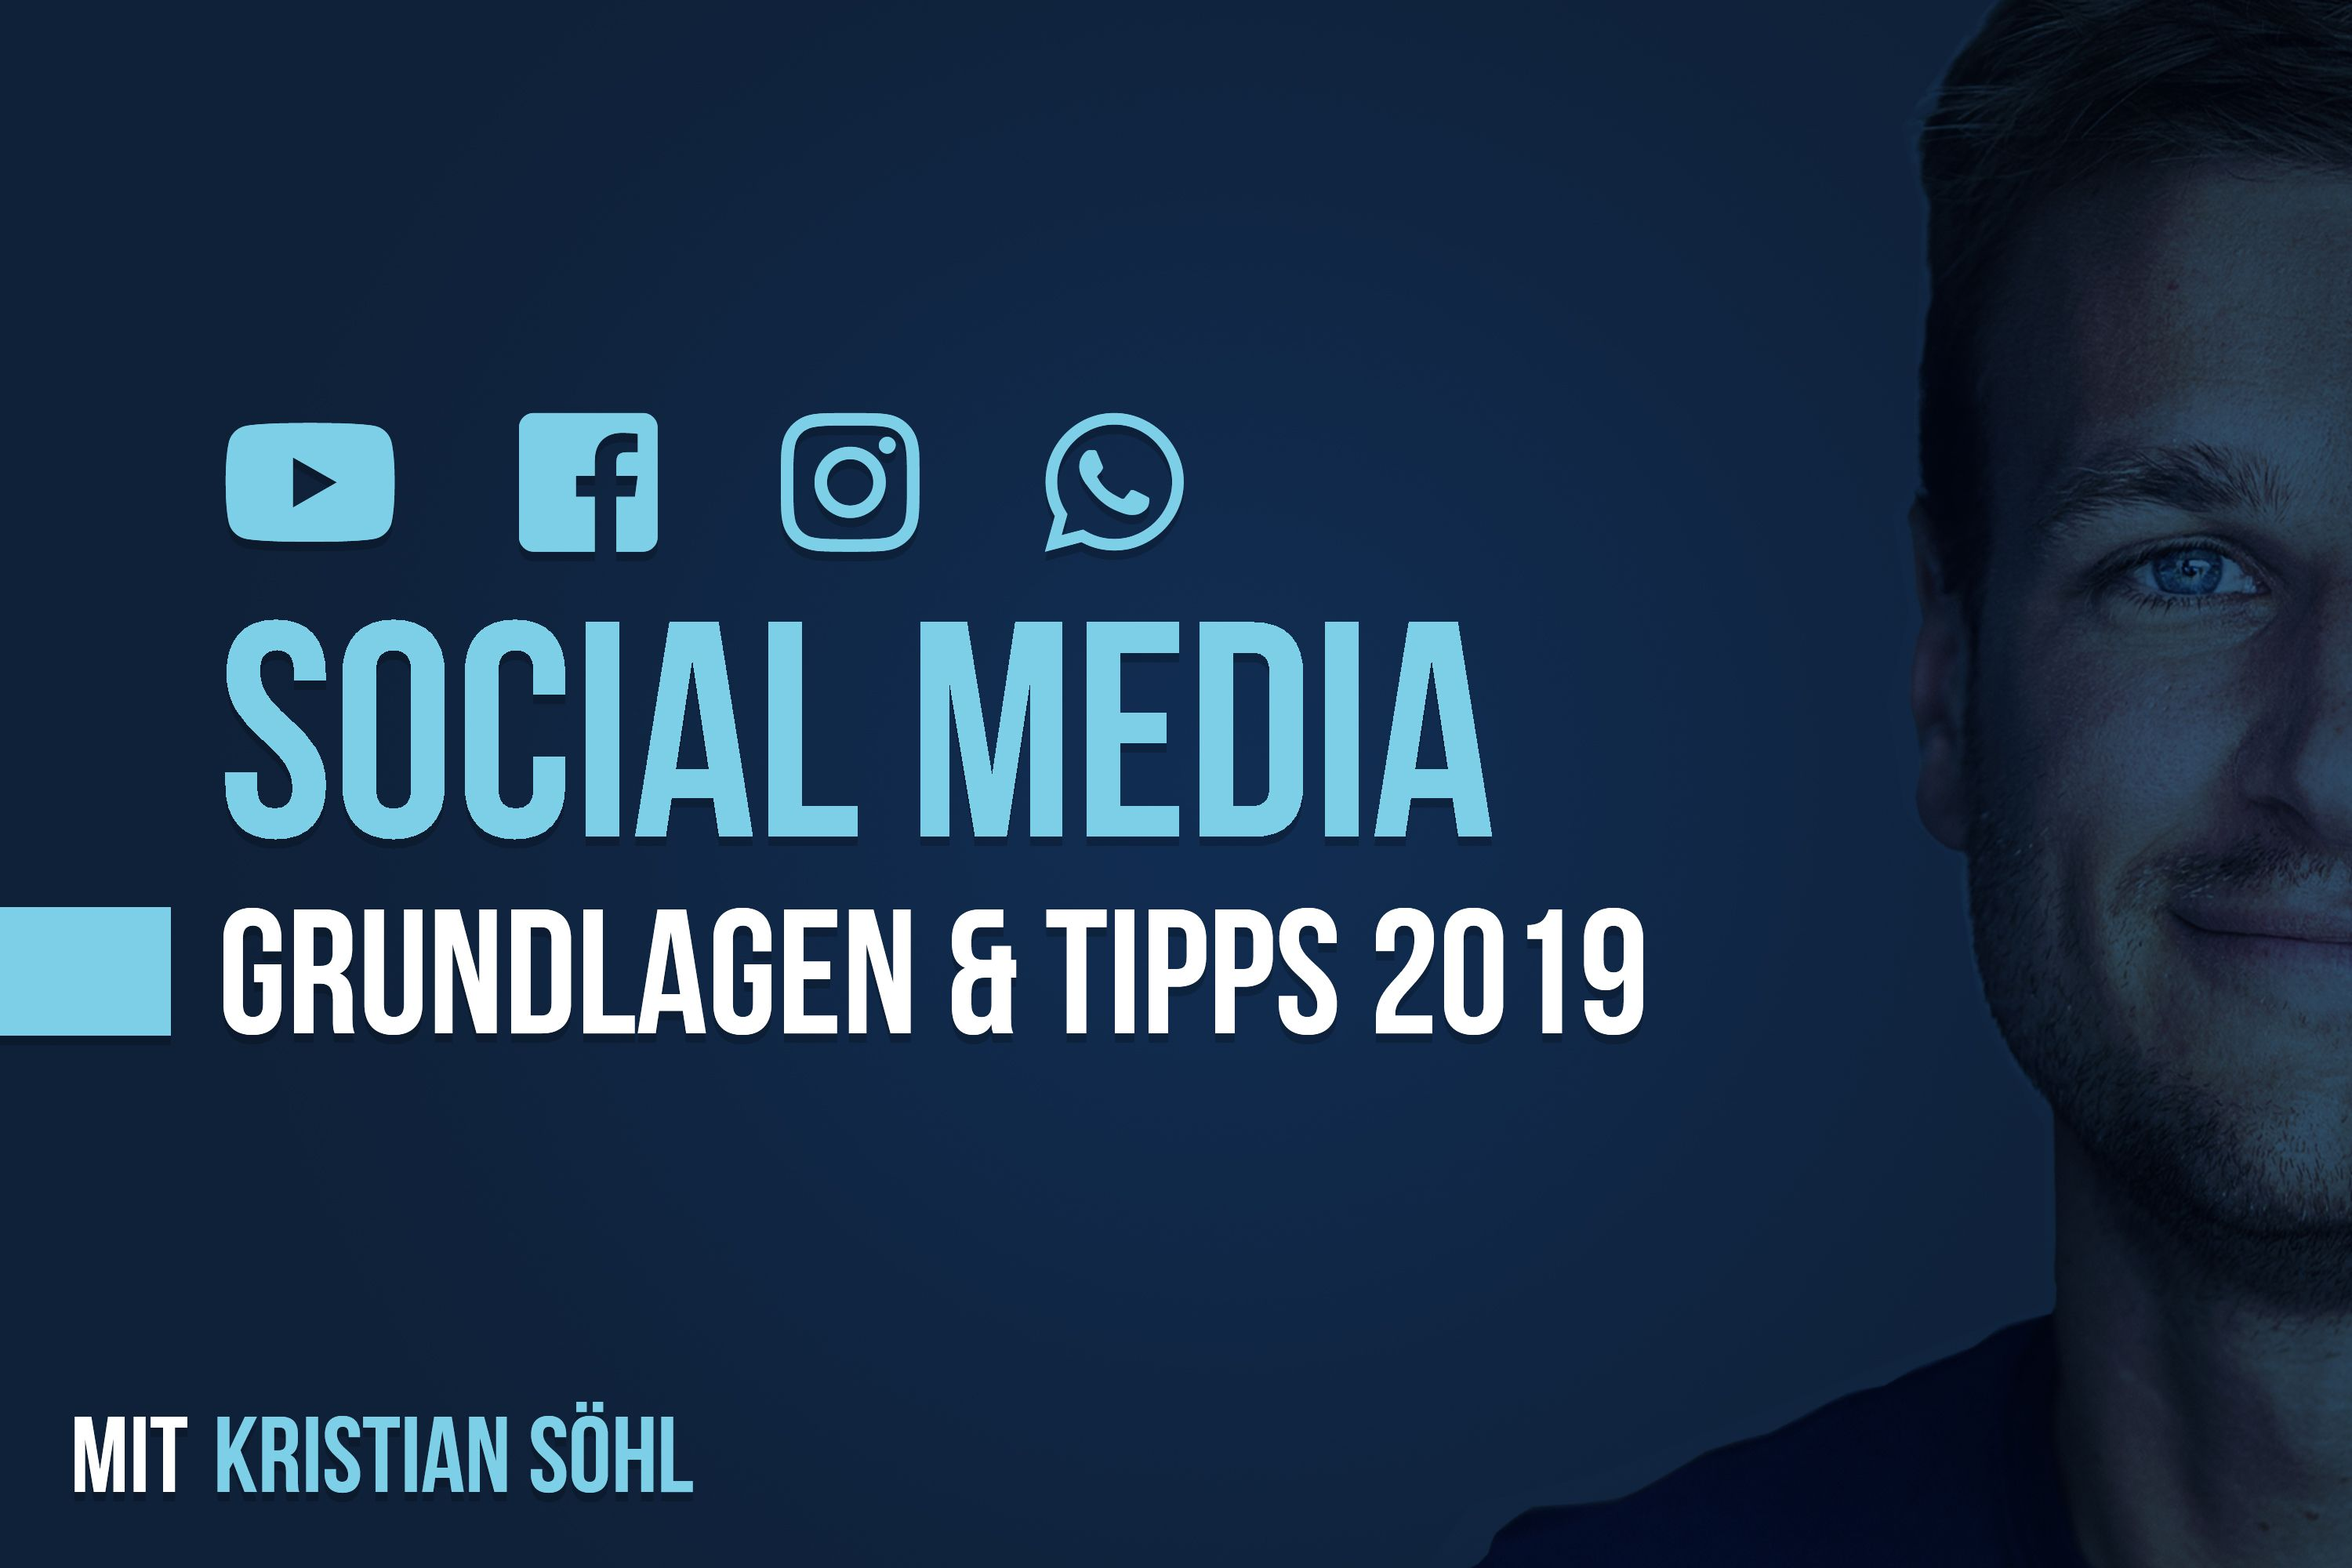 kristian_soehl_social_media_workshop_2019